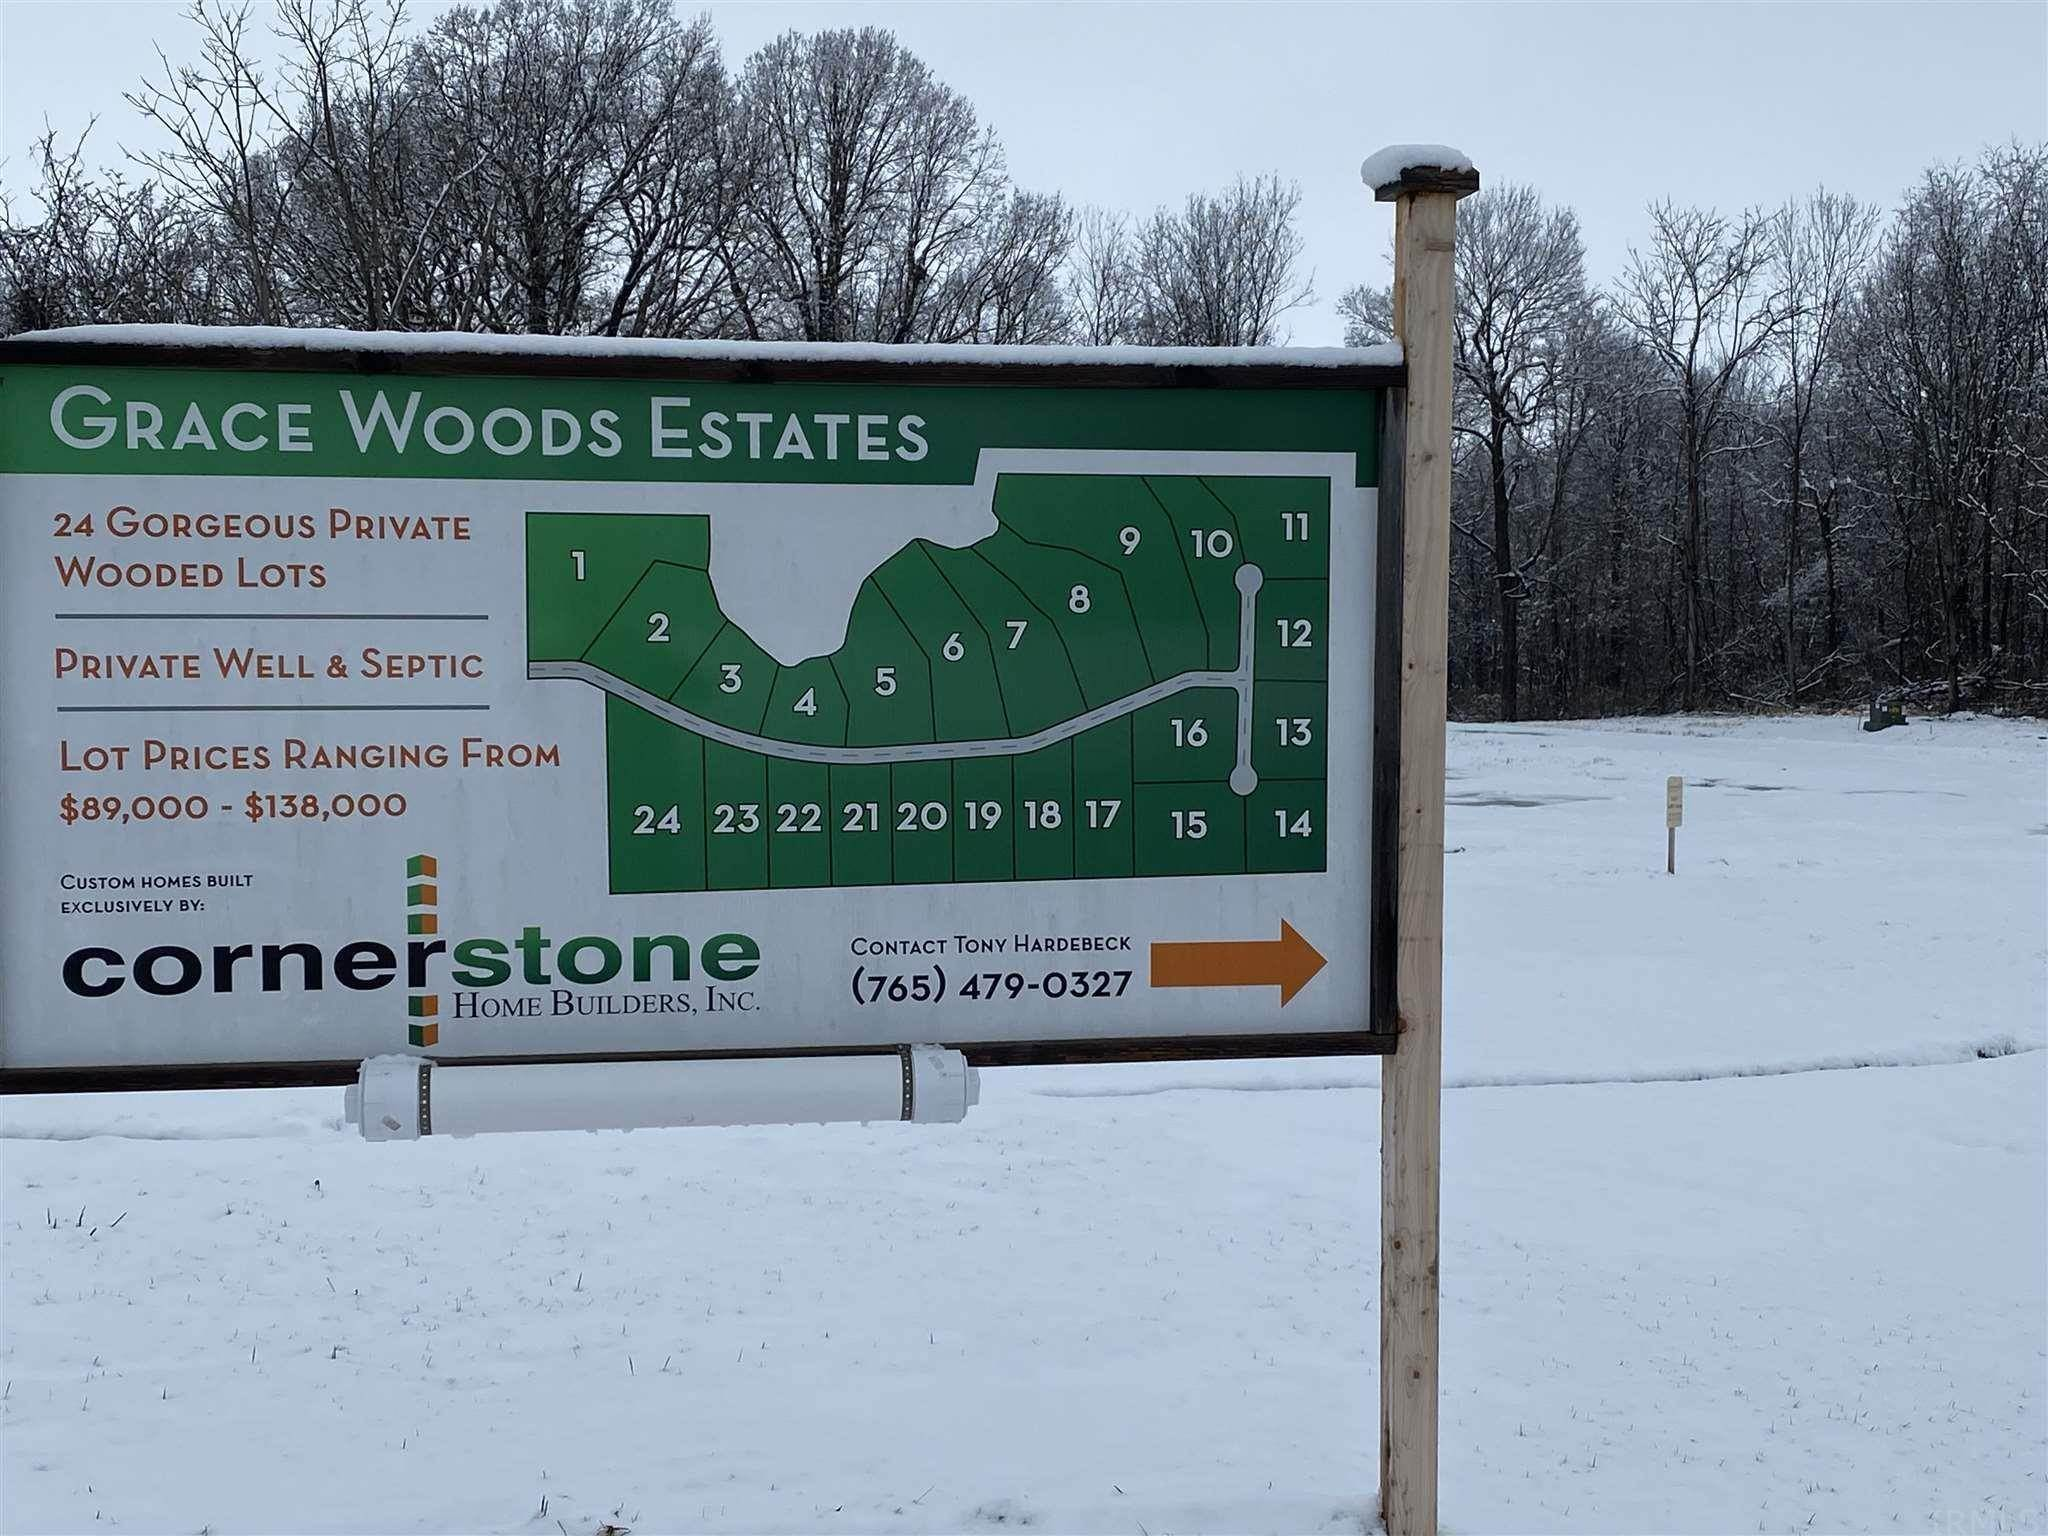 Residential Lots & Land for Sale at 9010 Herring Lane Battle Ground, Indiana 47920 United States